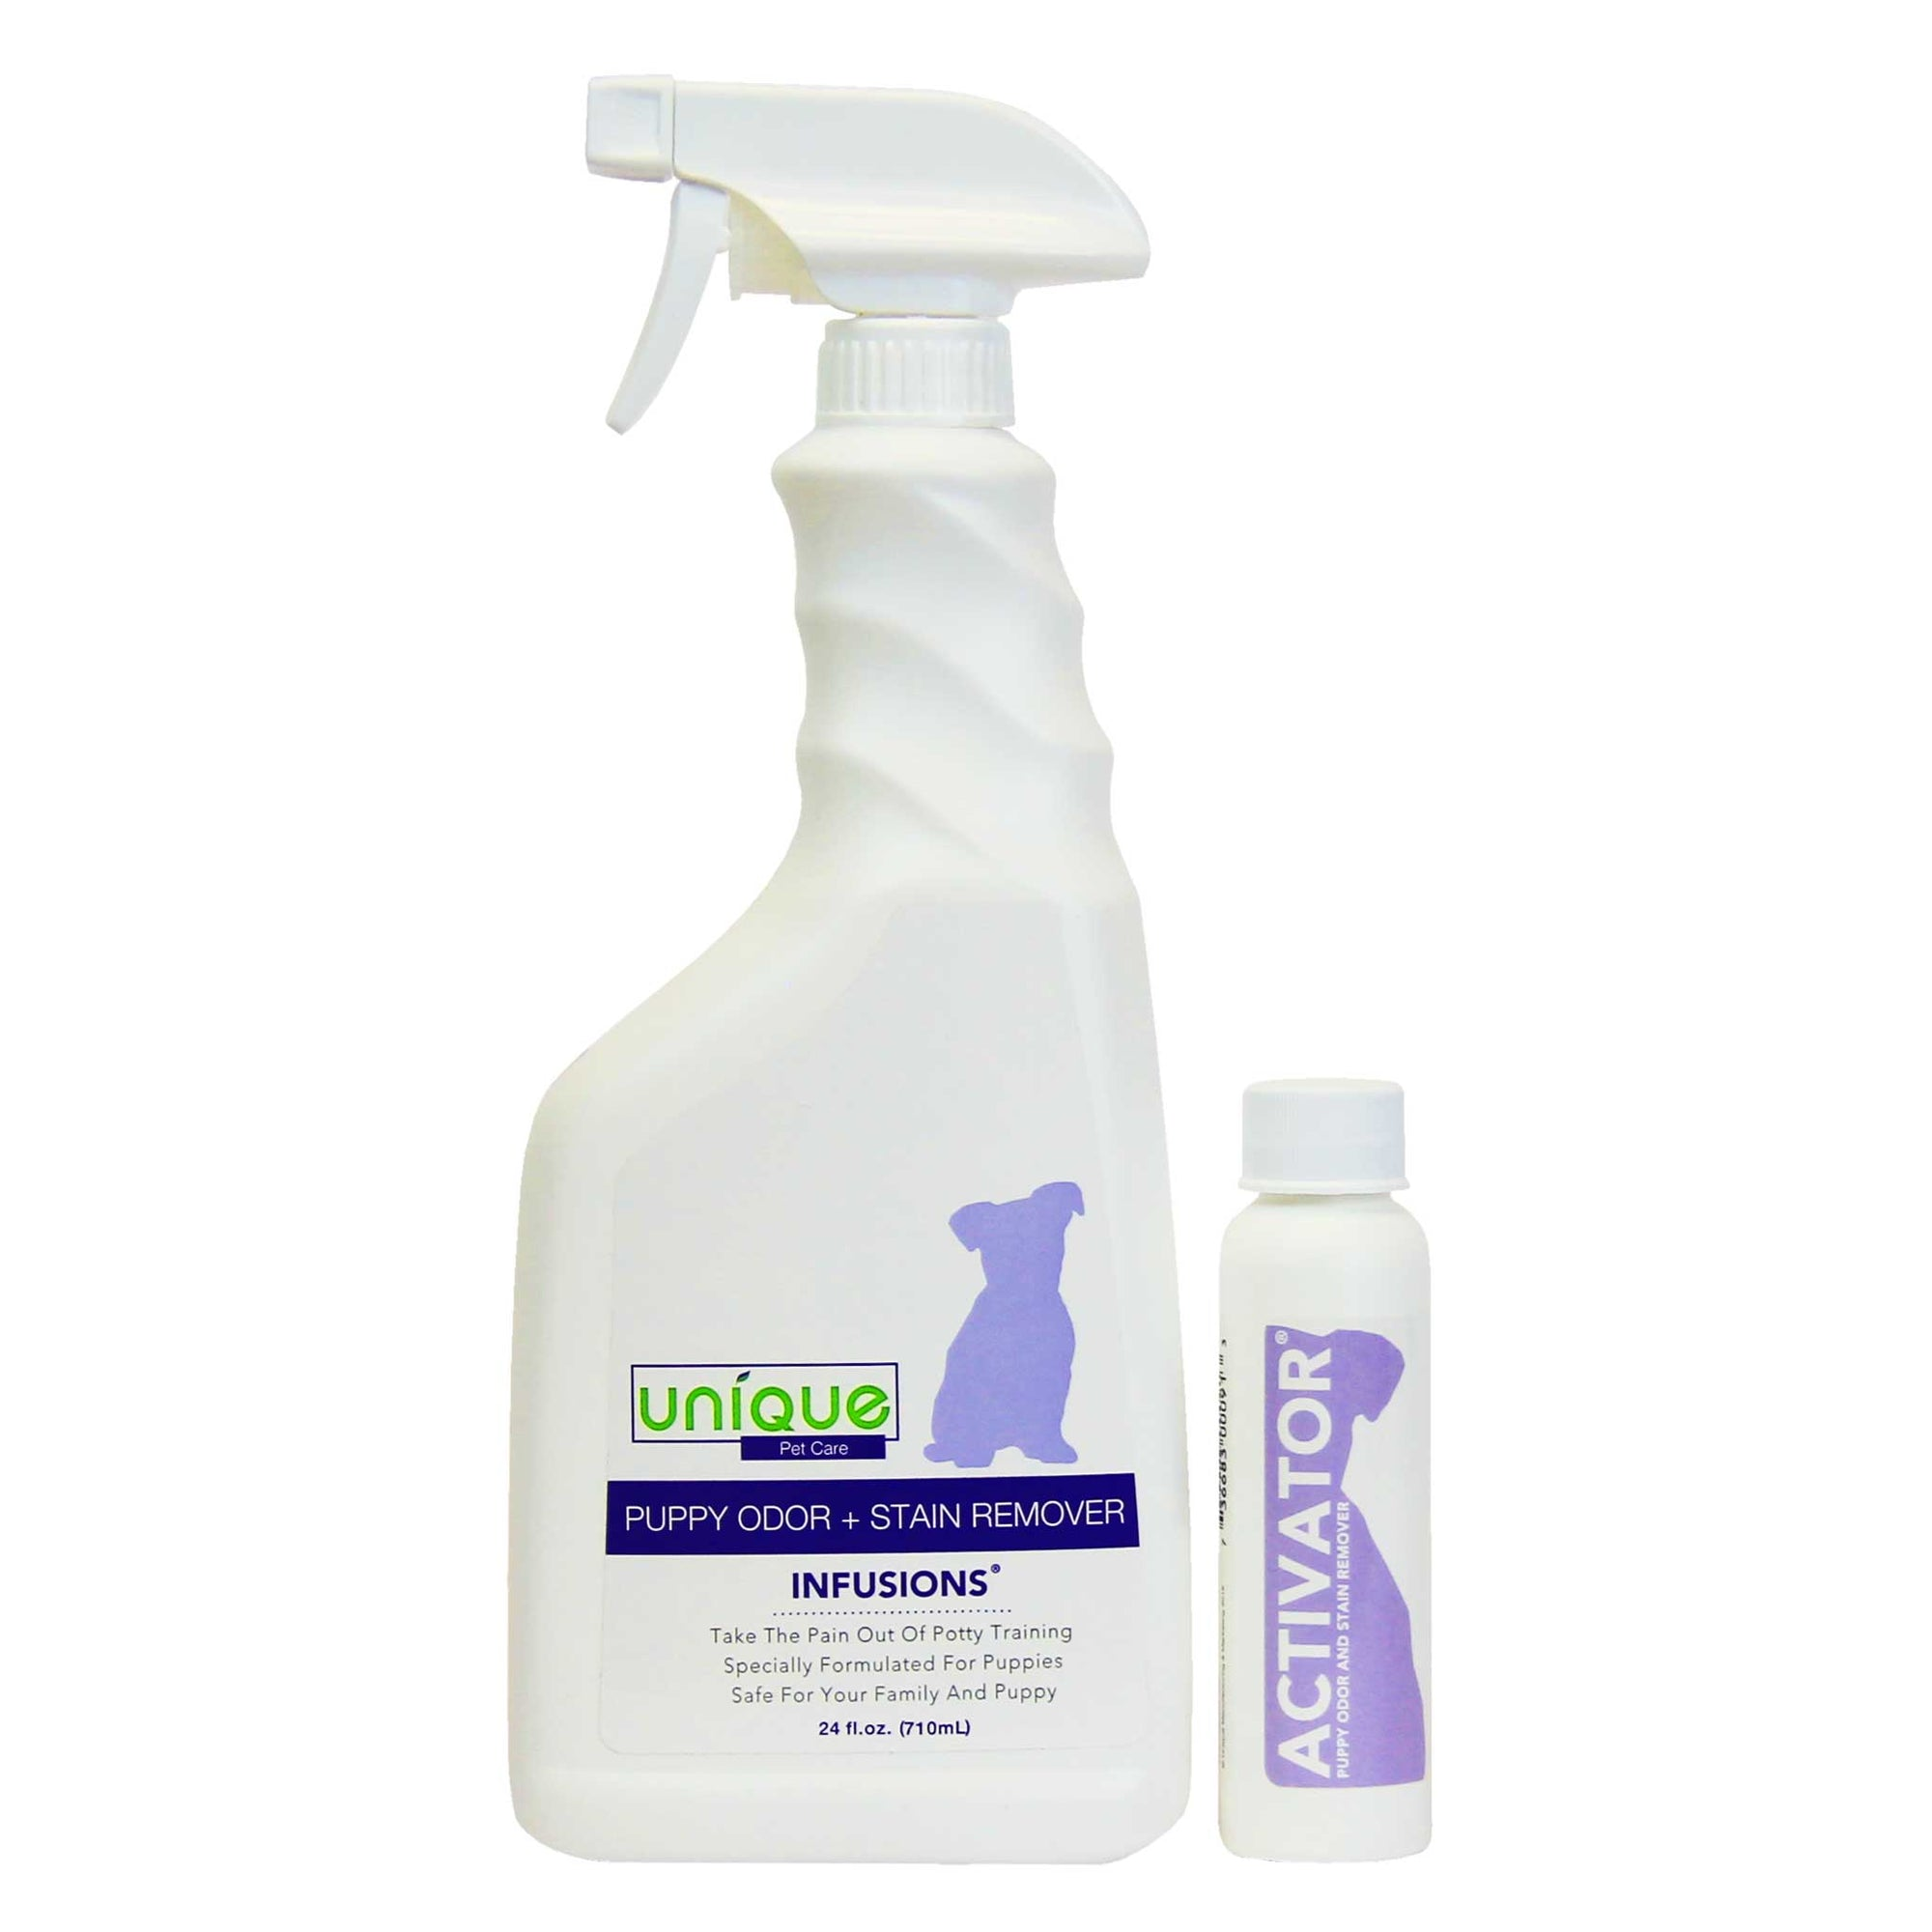 Infusions Puppy odor and stain remover. 24oz with activator